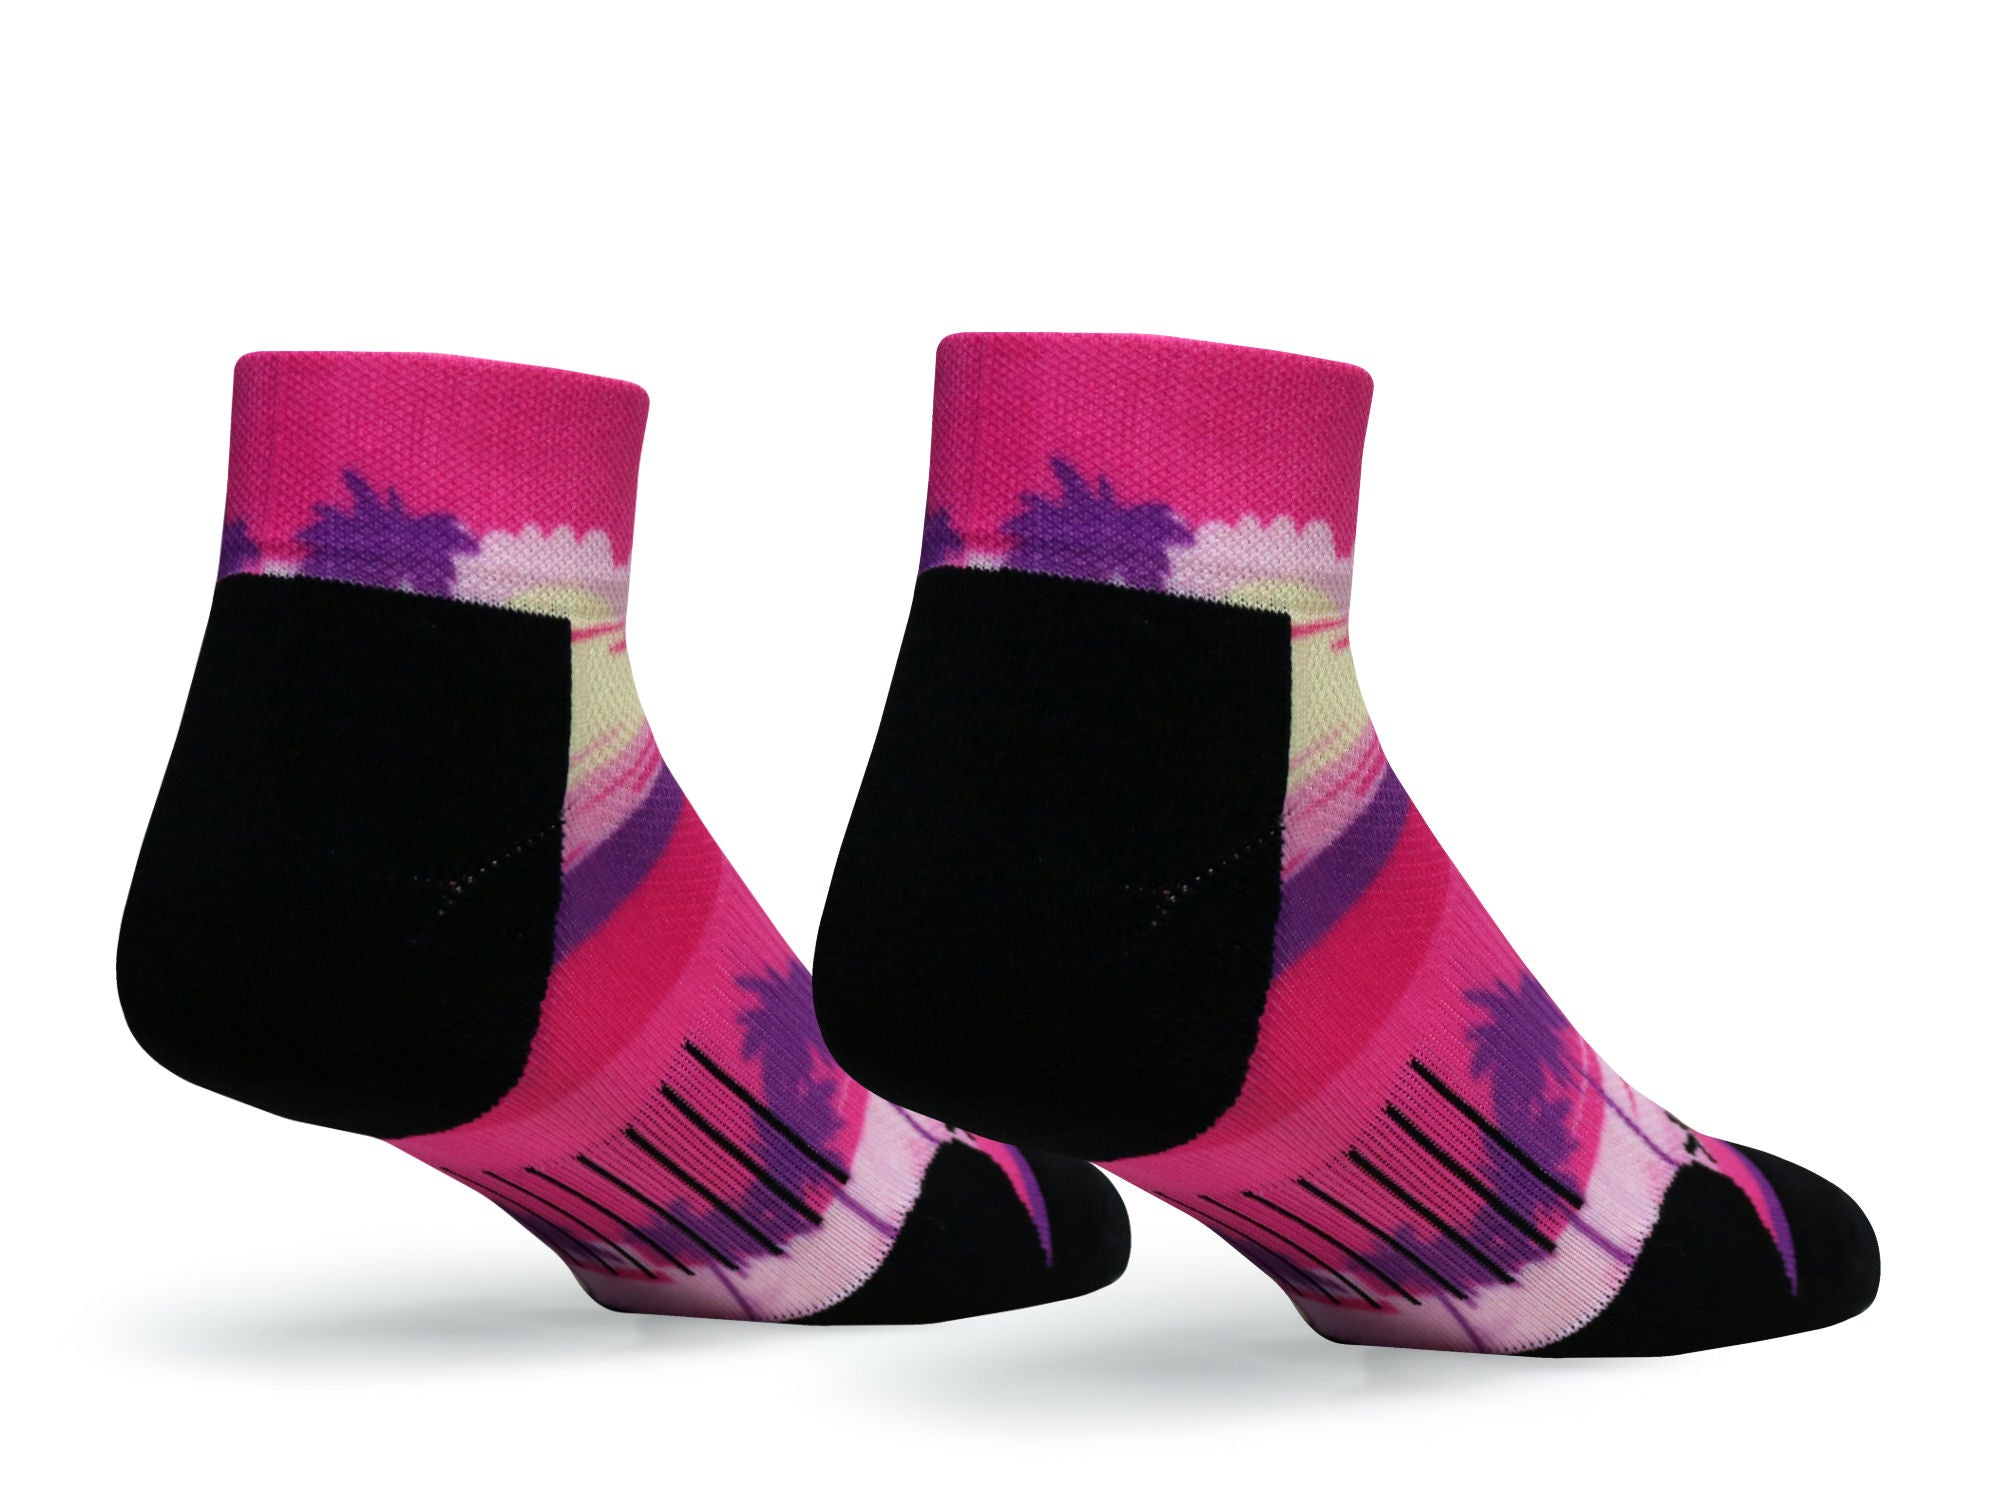 F360 Active Quarter Sunset Drive Pink (1 Pair Pack)